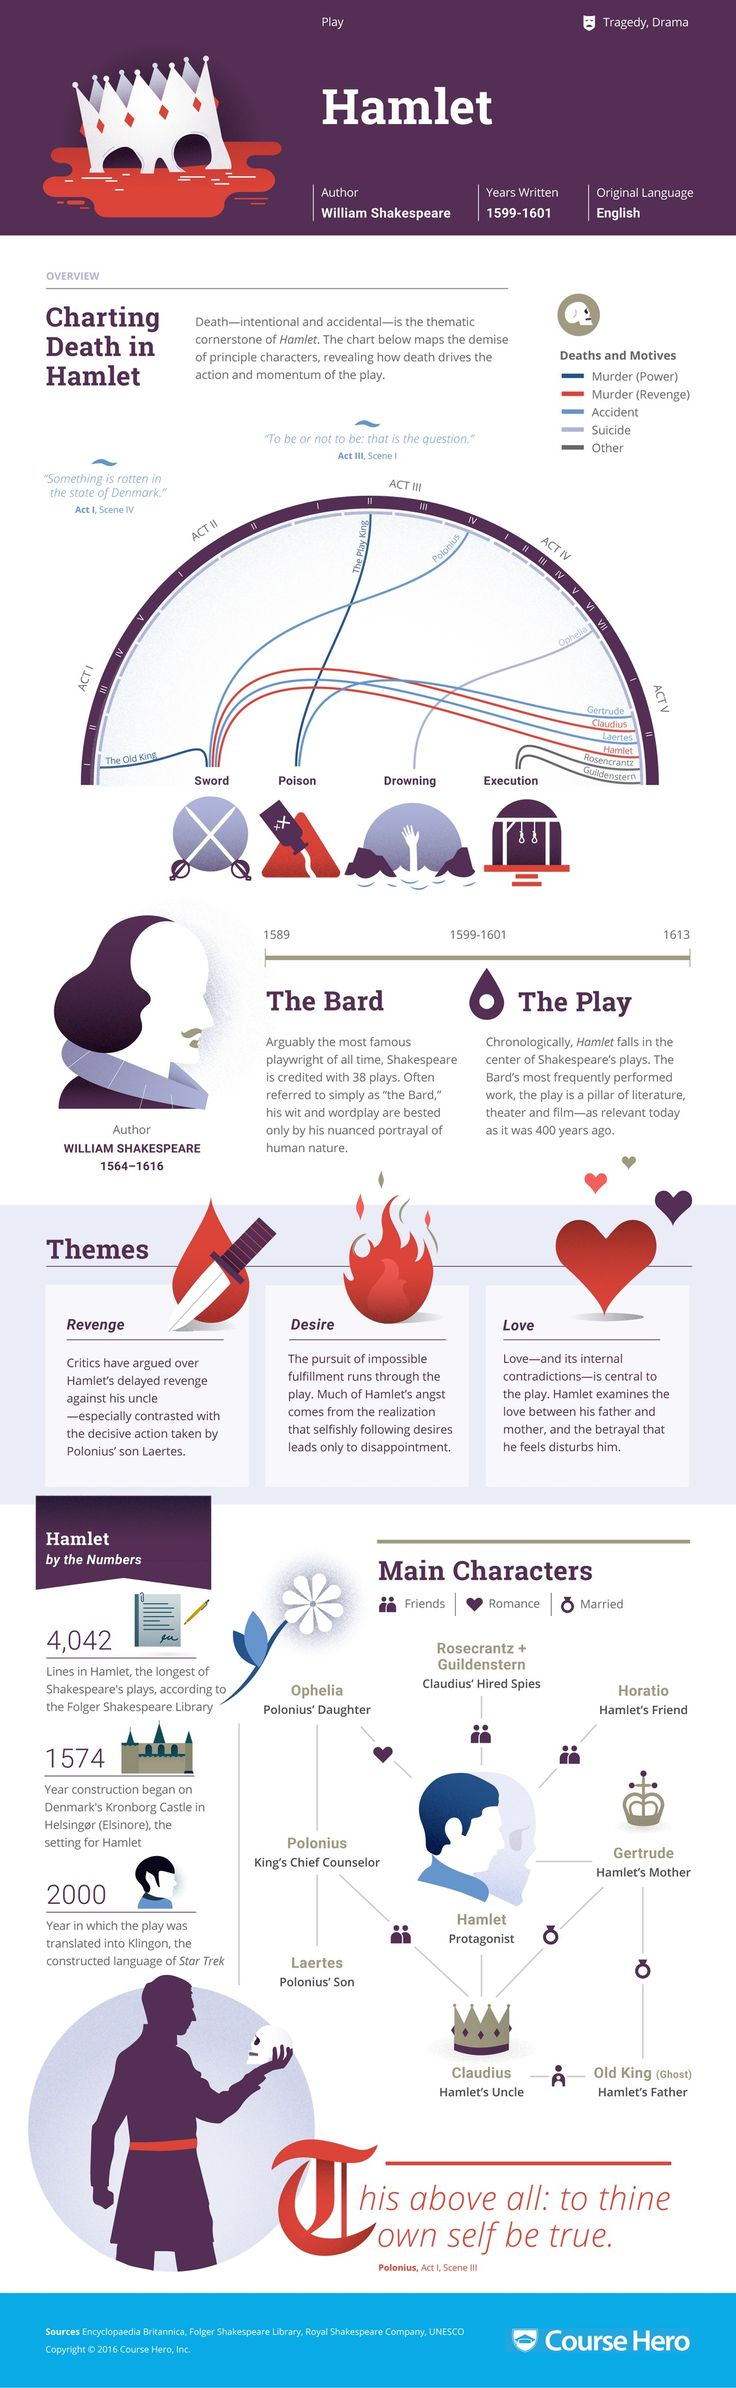 Check out this awesome 'Hamlet' infographic from Course Hero!